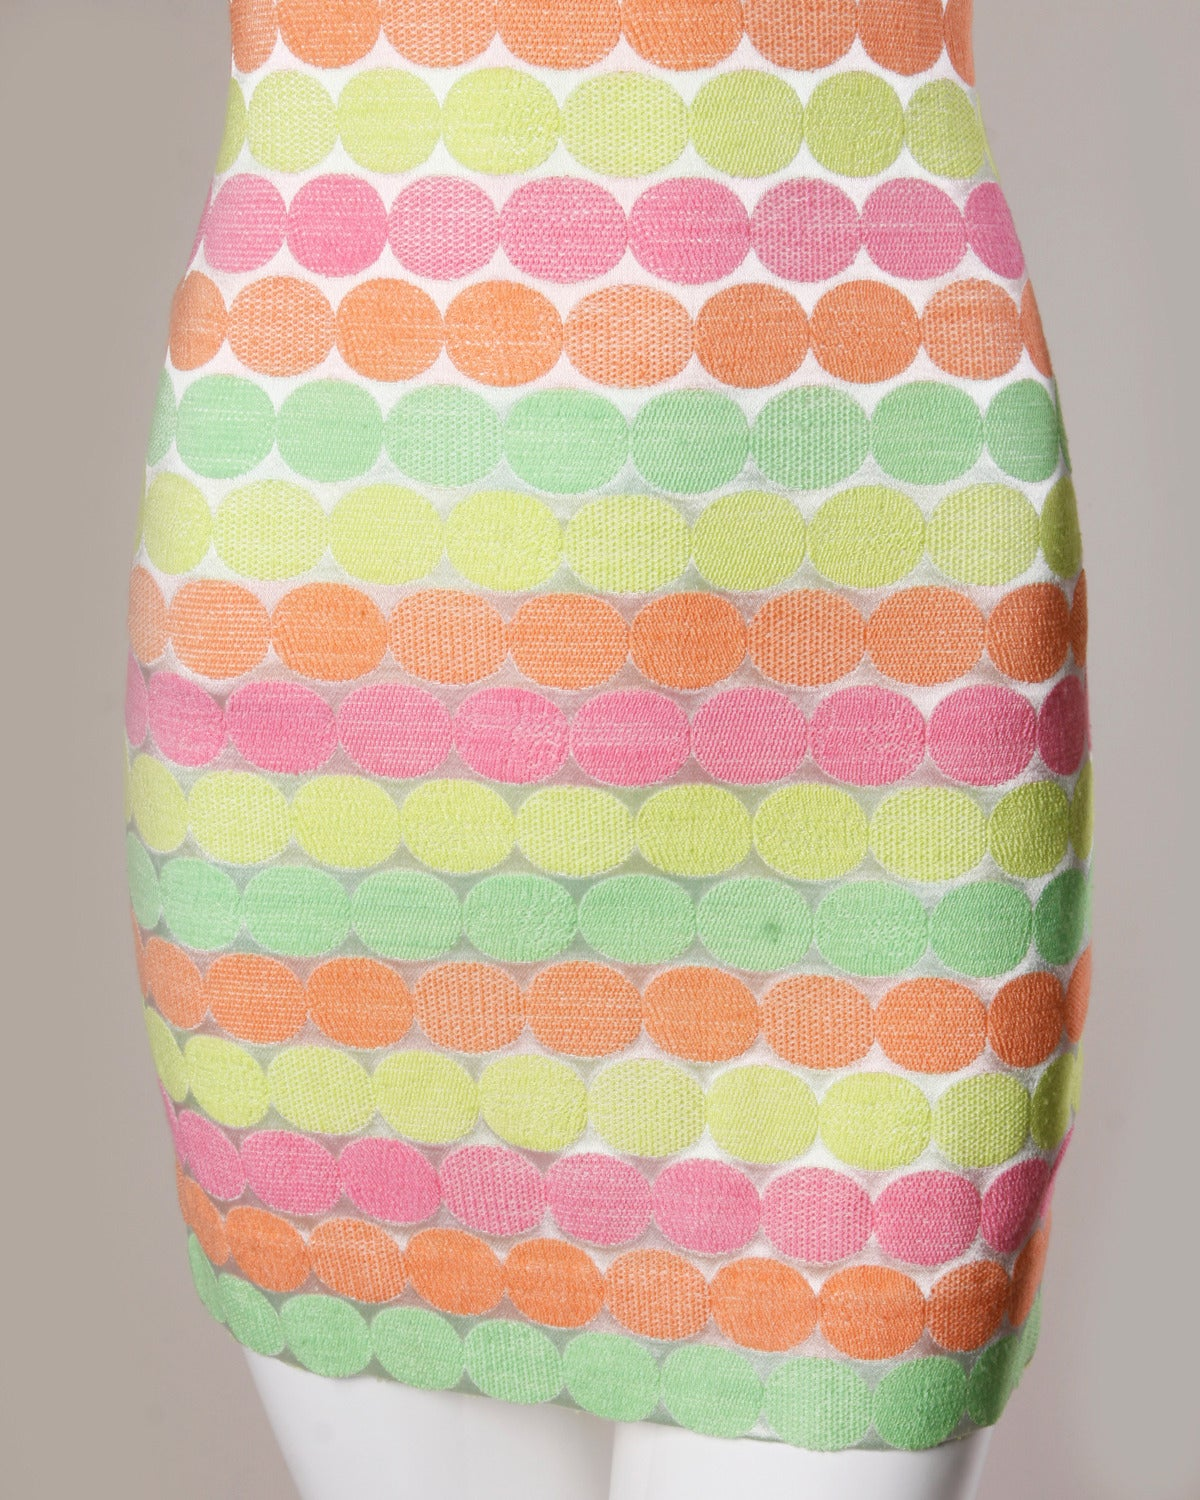 Gianni Versace Vintage 1990s 90s Neon Polka Dots Body Con Dress 3